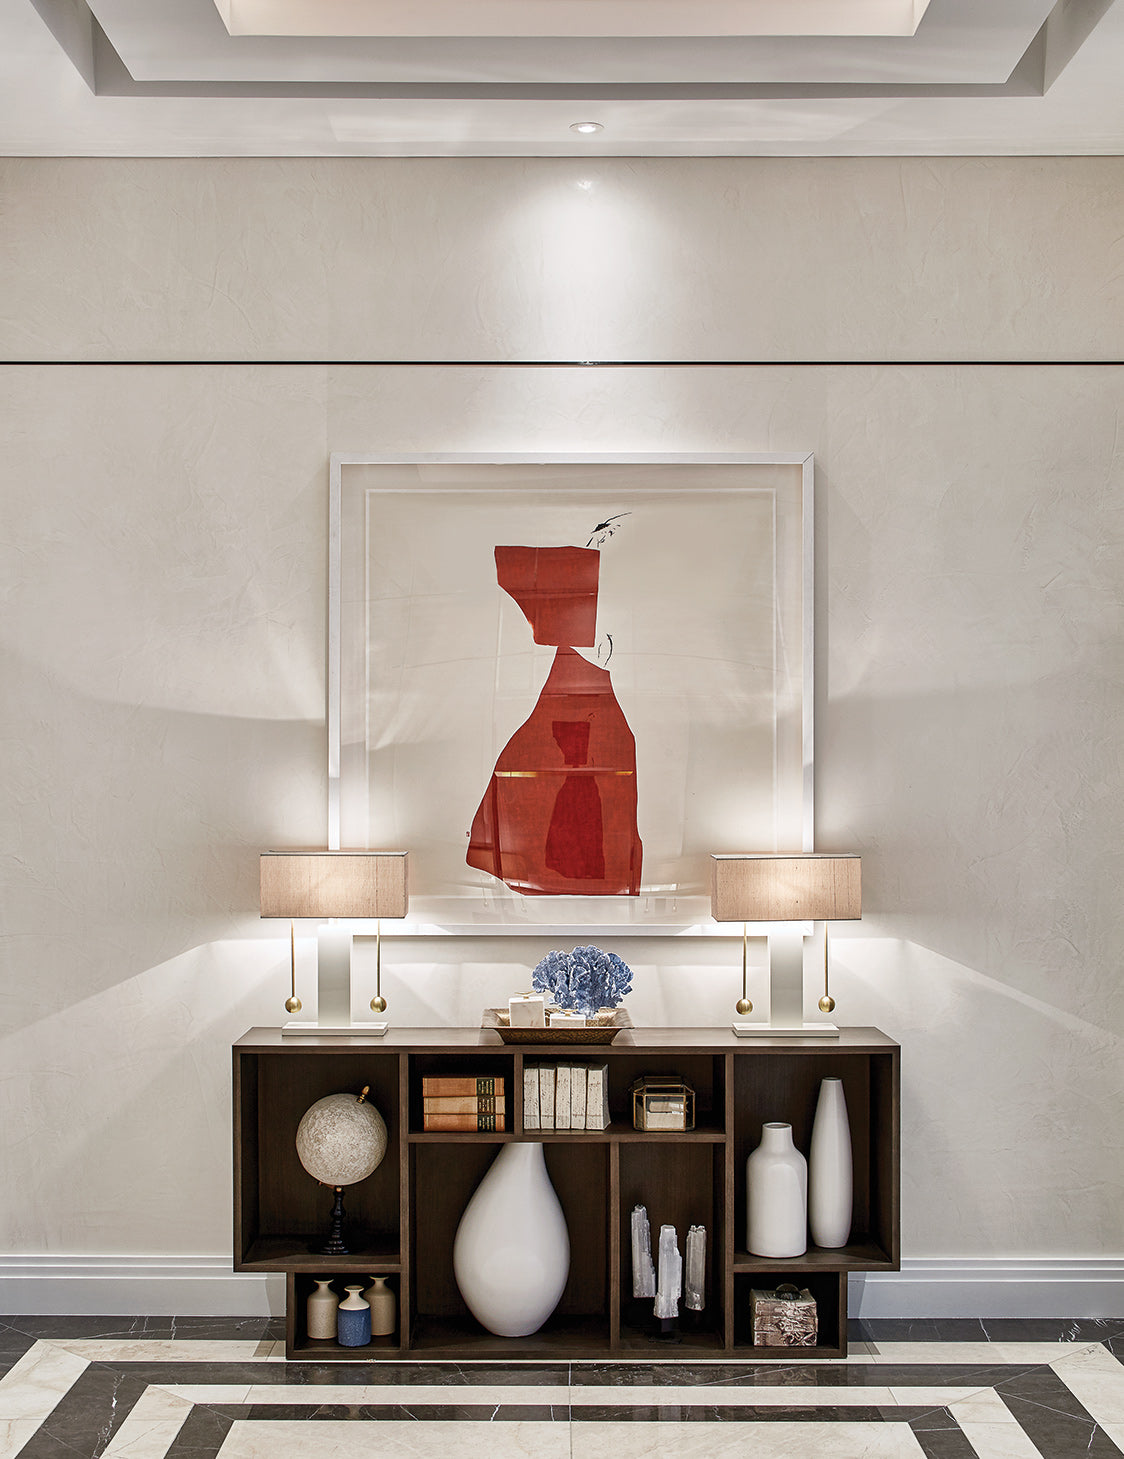 Chic Modern Hallway Ideas –Finchatton, Orchid Apartment – LuxDeco.com Style Guide